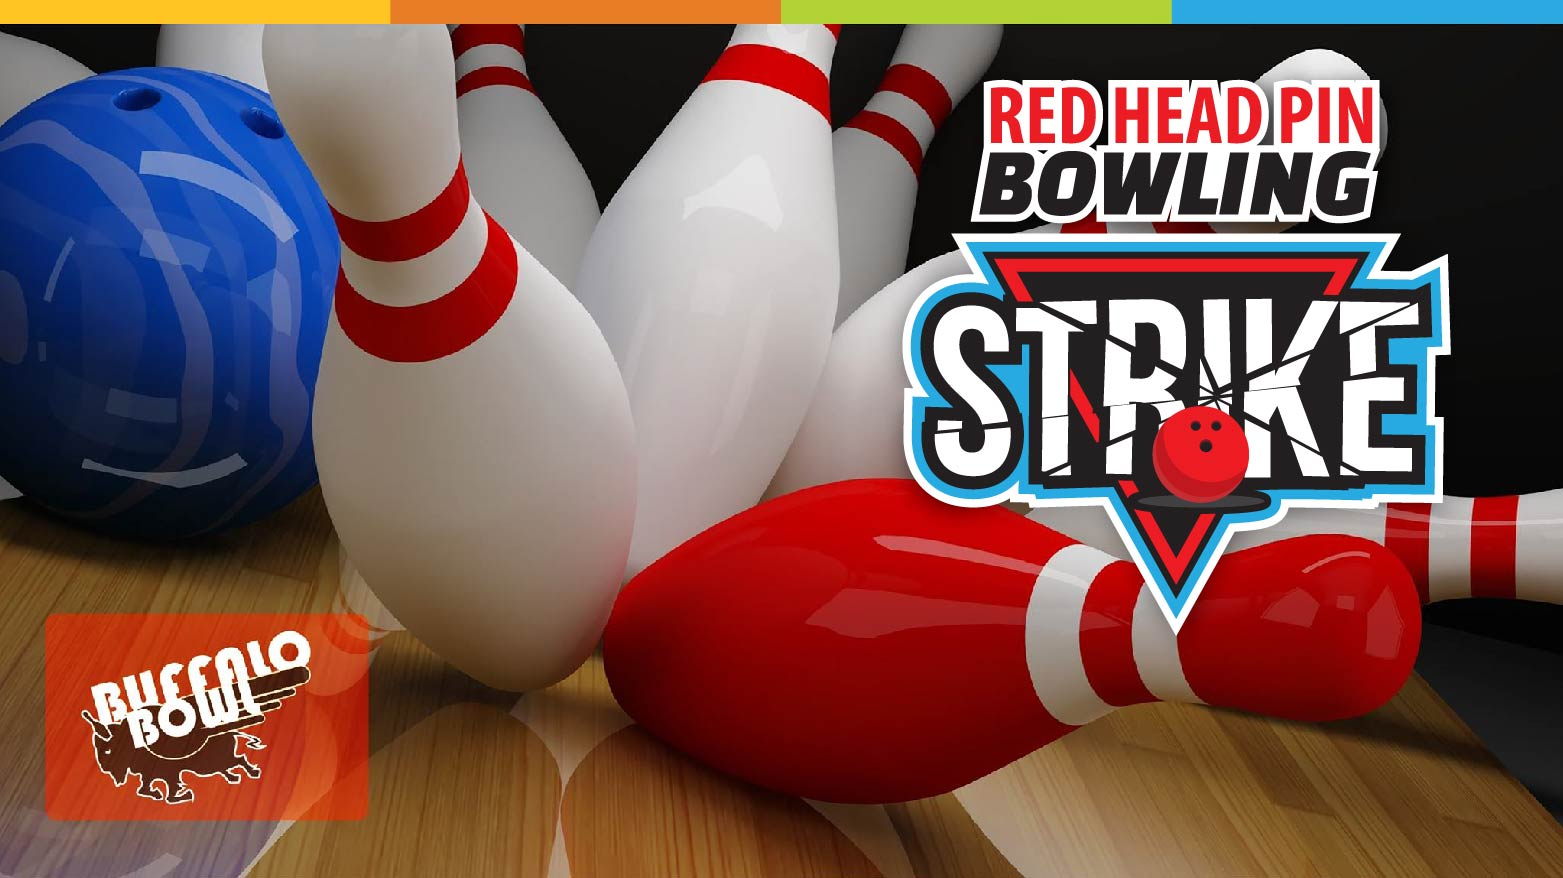 Red Head Pin Bowling